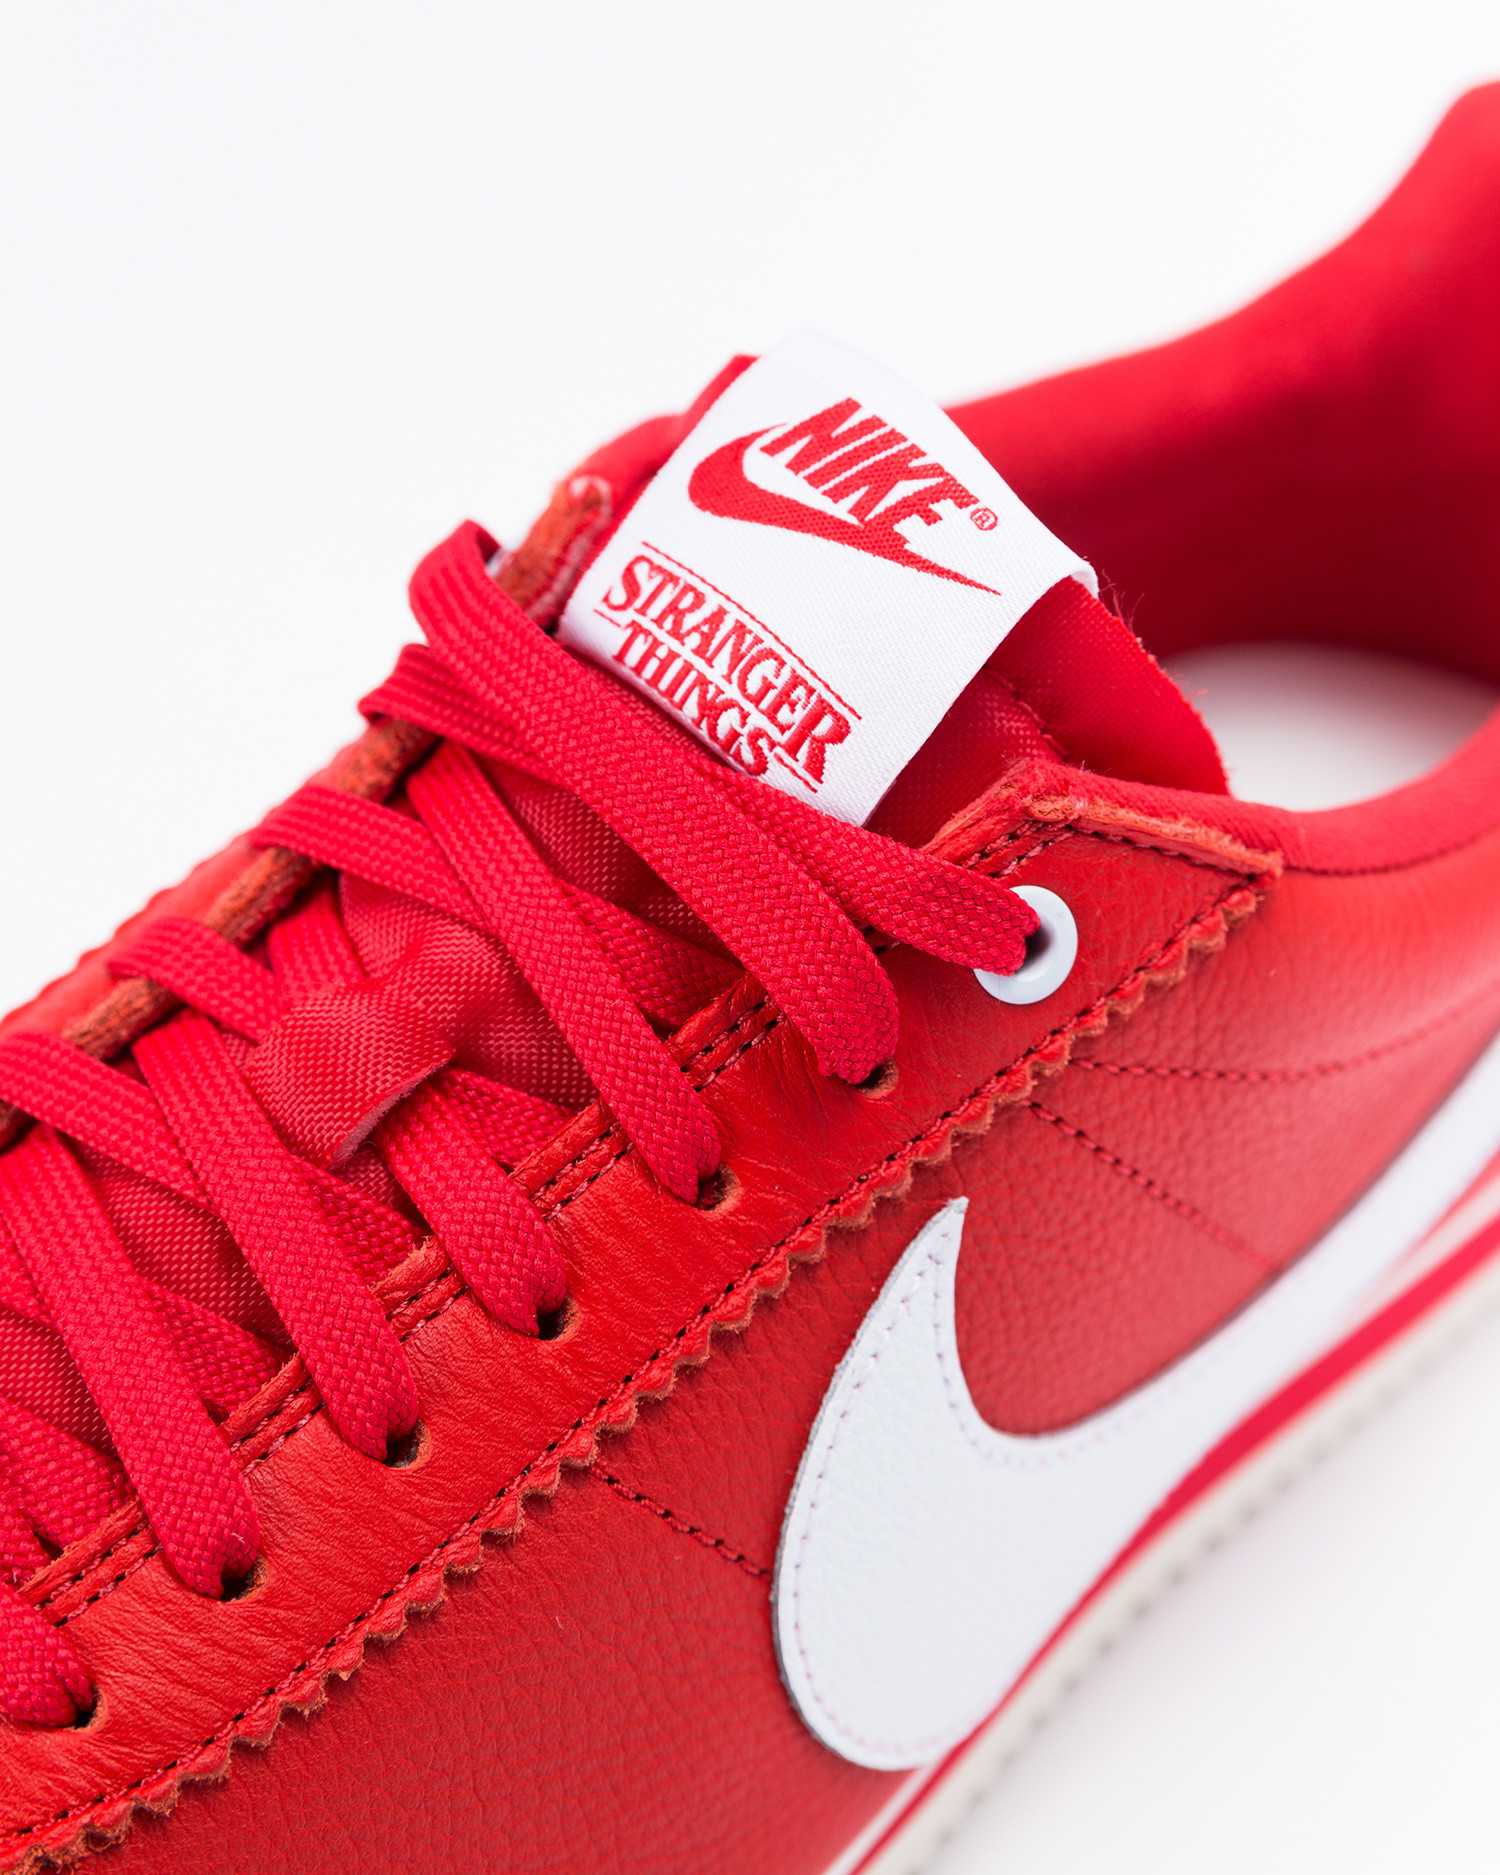 popular brand coupon code differently Nike Nike x Stranger Things Cortez QS St University red/white